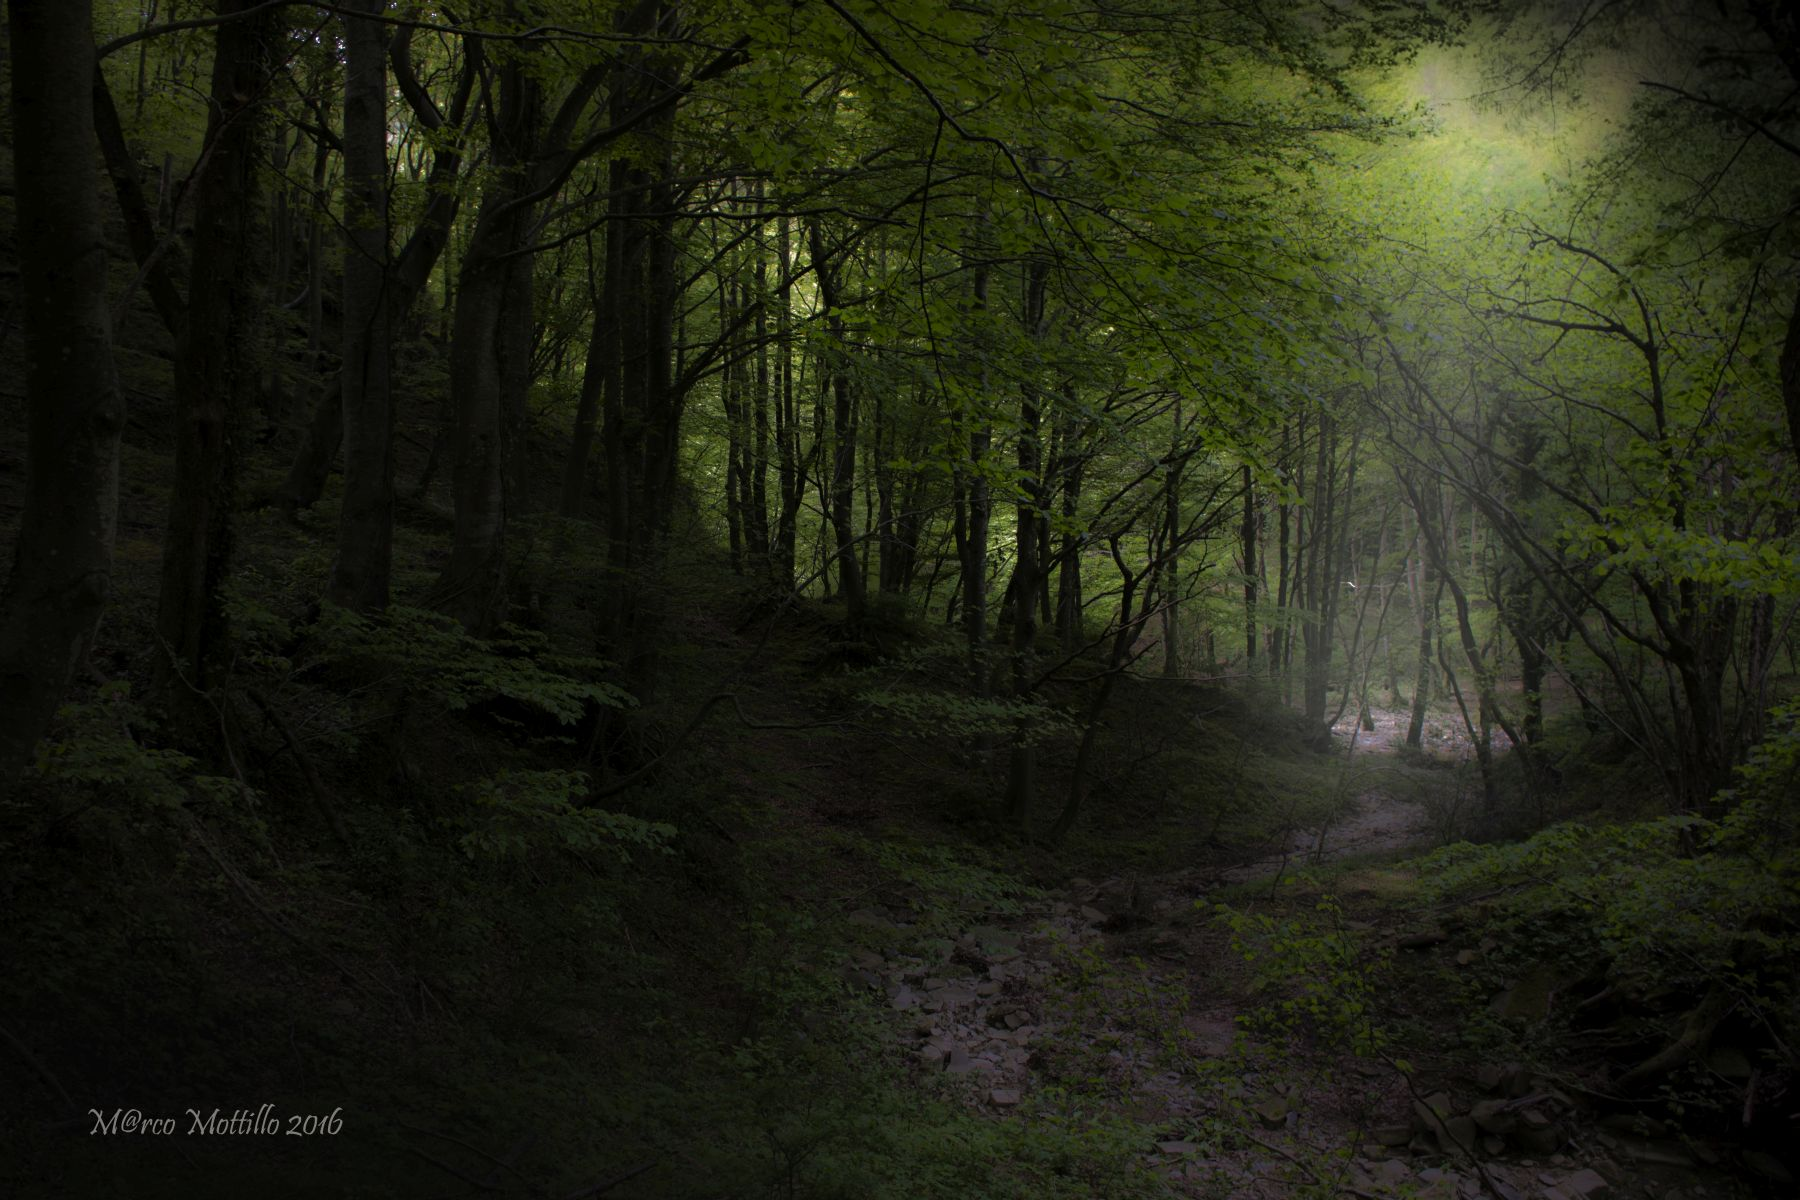 In the woods...